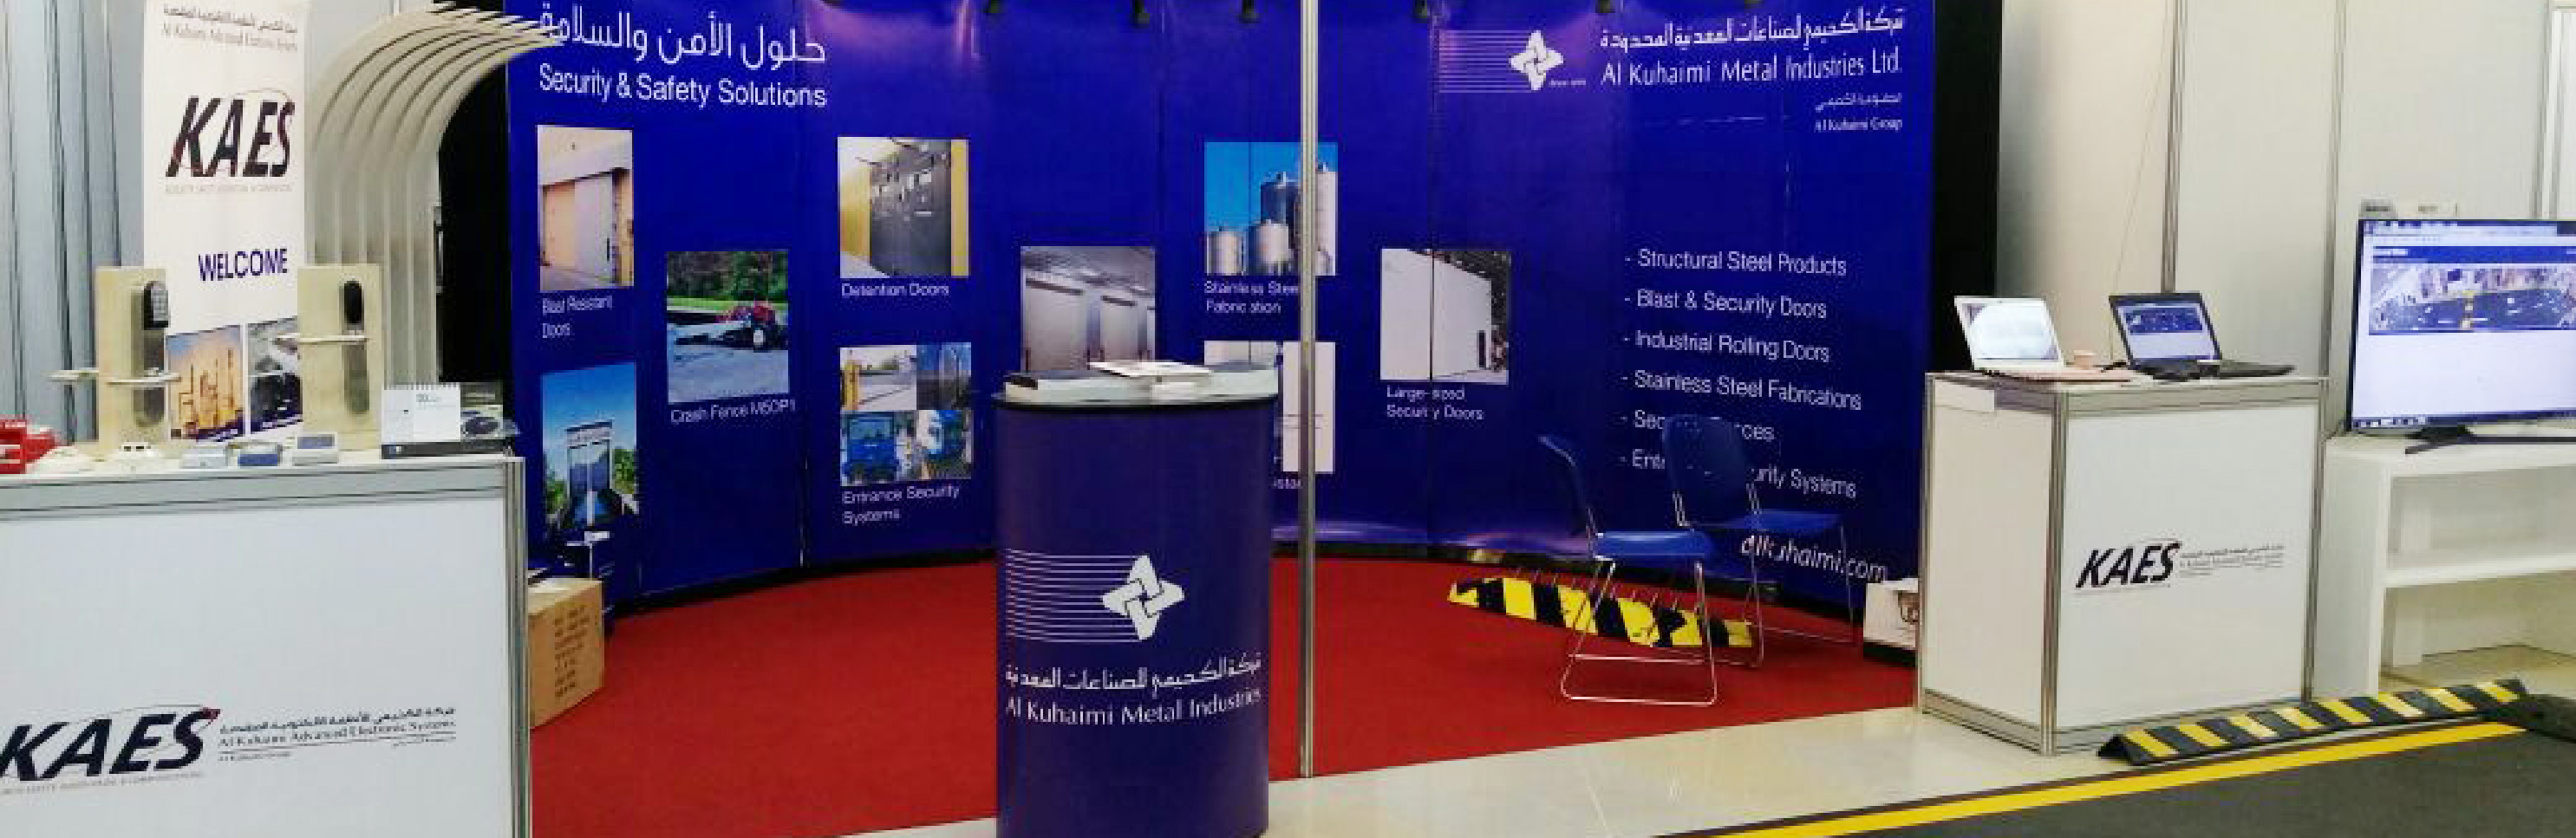 Al Kuhaimi Group | Safety & Security Solutions